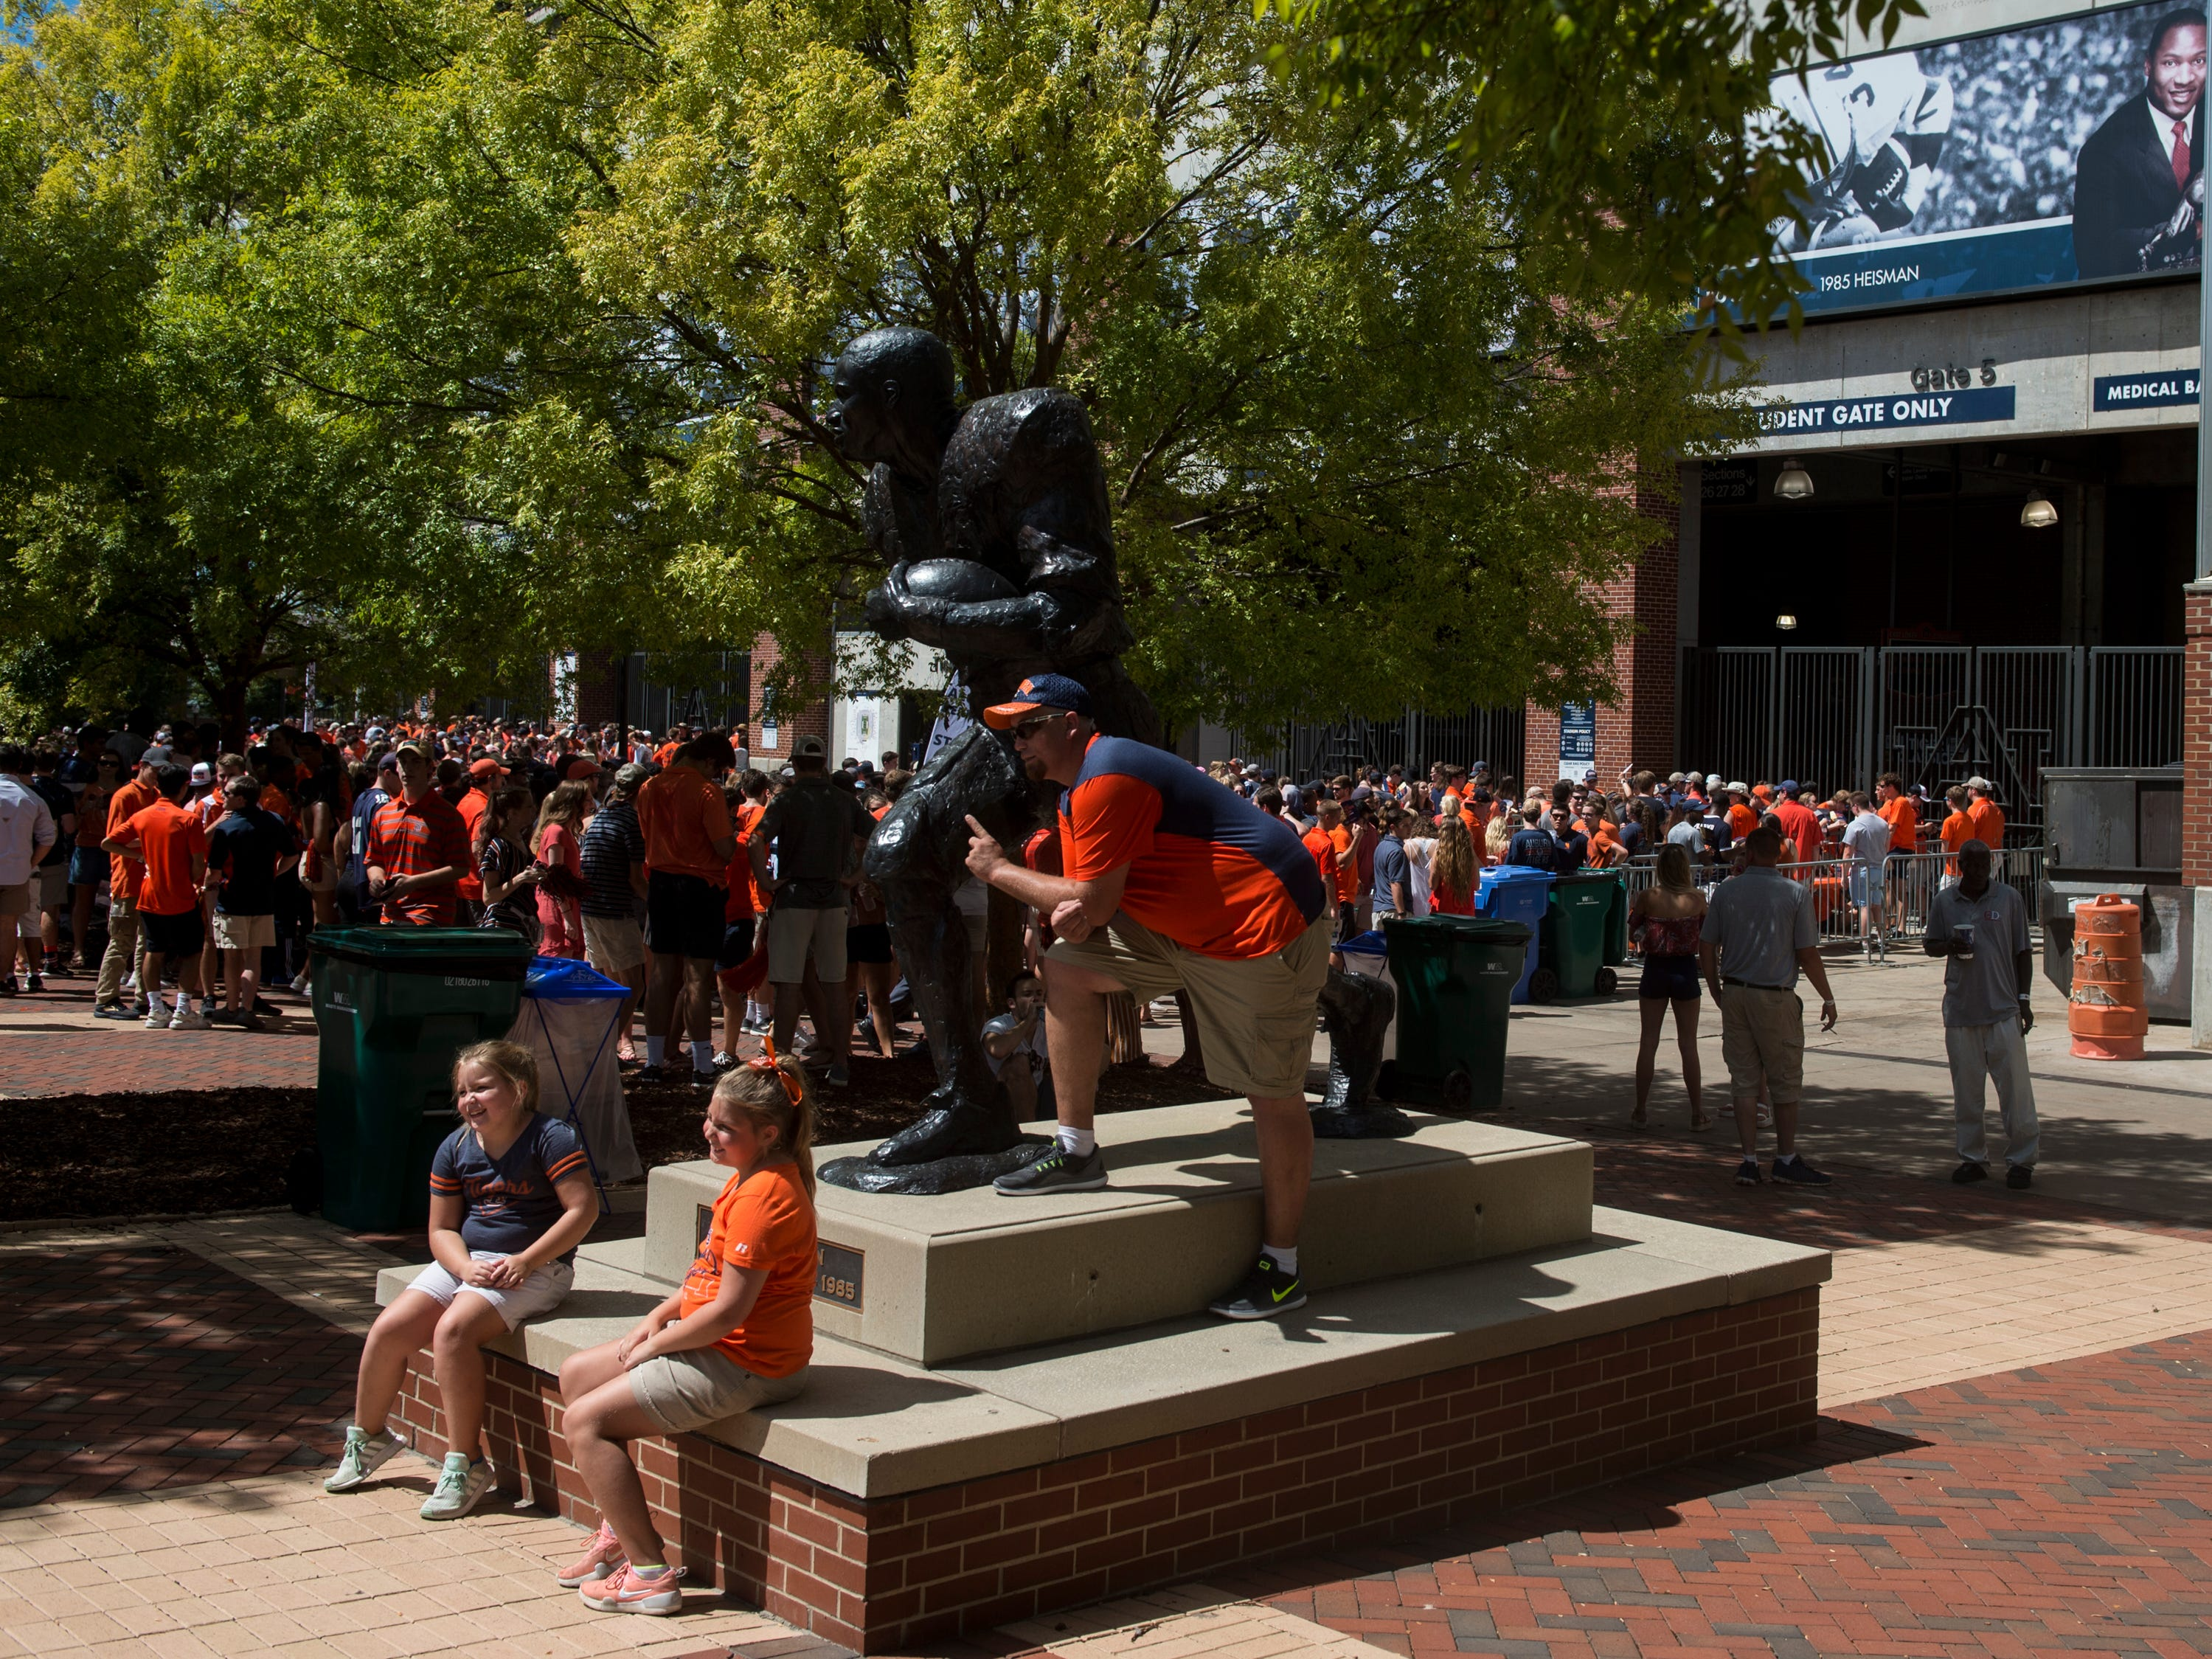 Baylee Acreman, 8, from left, her sister, Kenslee, 10, and dad, Jesse, pose with the Bo Jackson statue outside Jordan-Hare Stadium in Auburn, Ala., on Saturday, Sept. 15, 2018.